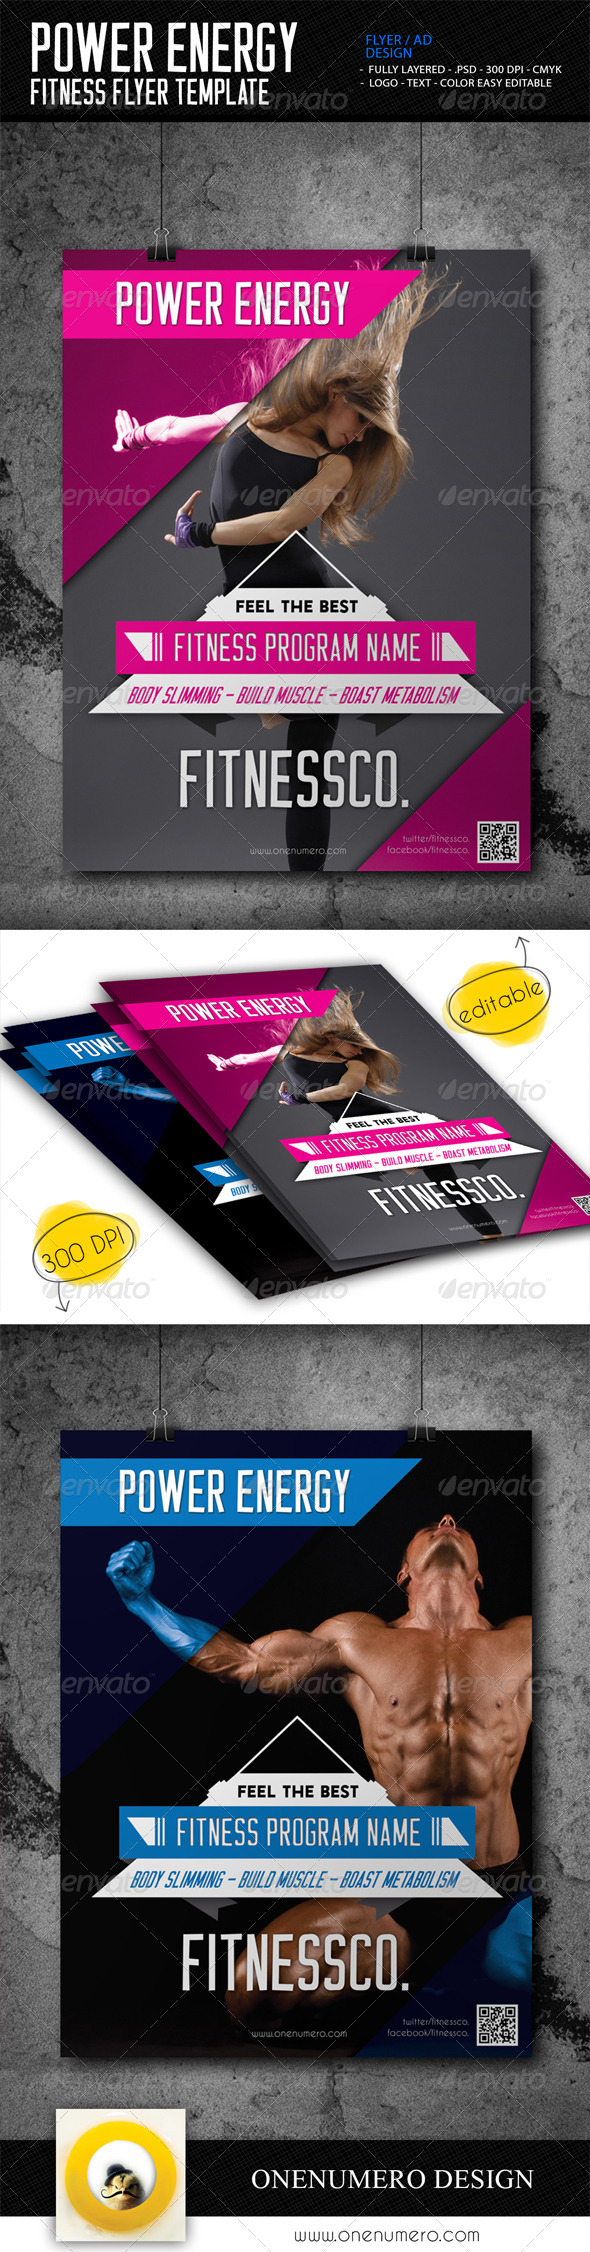 GraphicRiver Power Energy Fitness Flyer Template 7662781